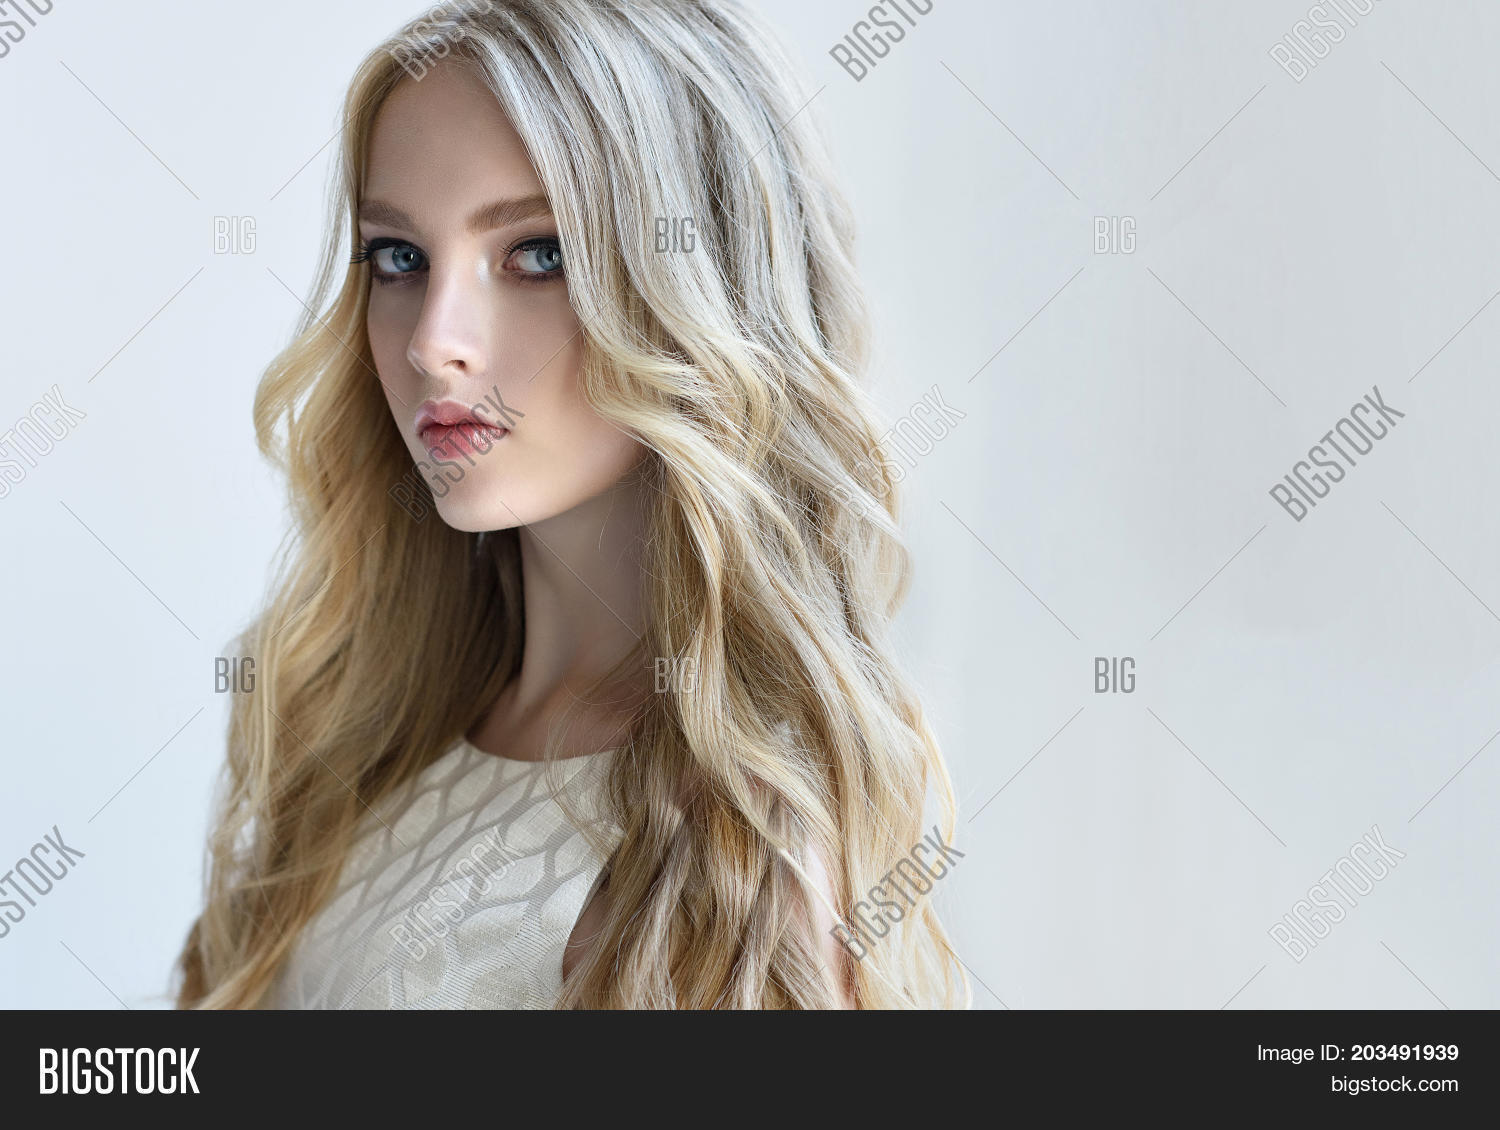 Blonde Fashion Girl Image Photo Free Trial Bigstock